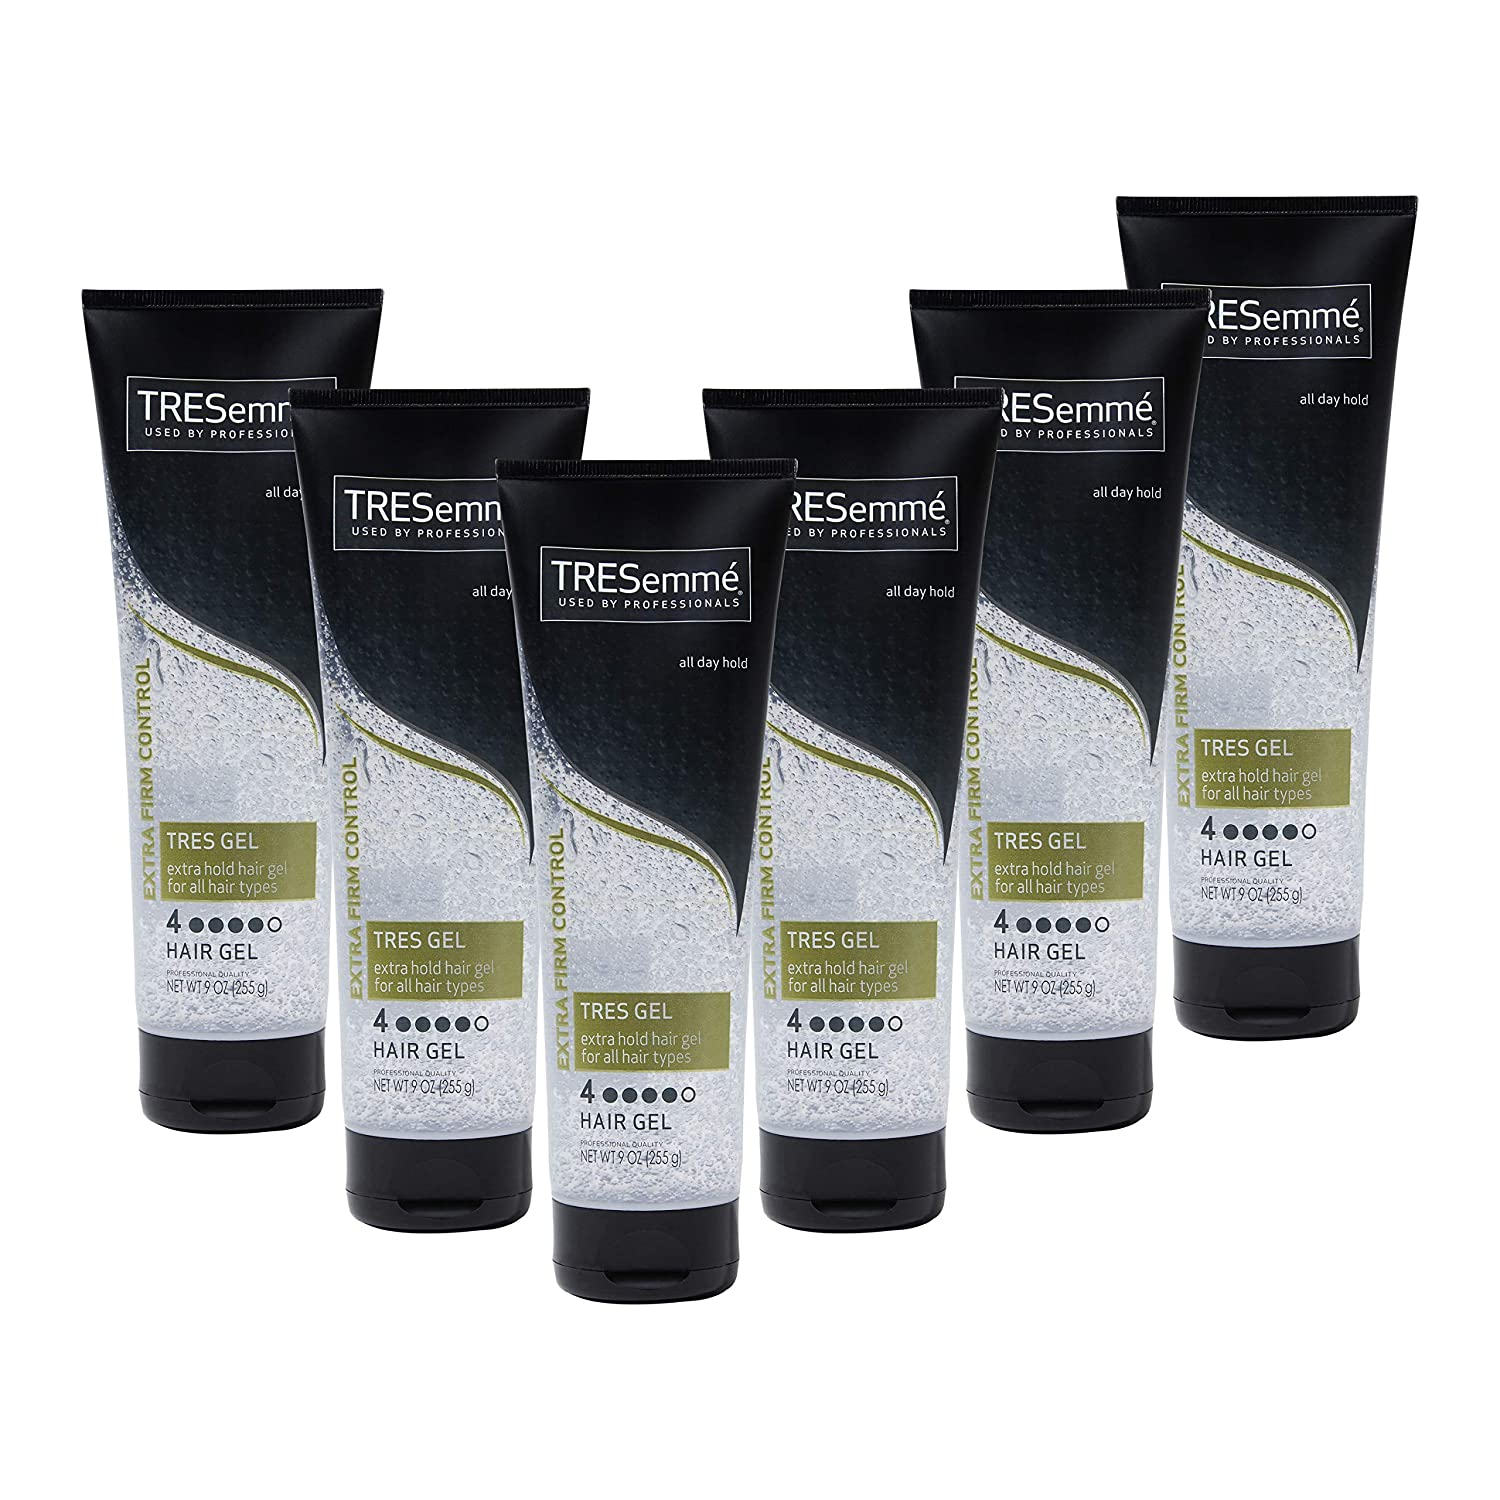 Amazon Com Tresemme Tres Two Hair Styling Gel Extra Hold Styling Extra Firm Control Hair Gel For All Hair Types 9 Oz Pack Of 6 Hair Styling Gels Beauty